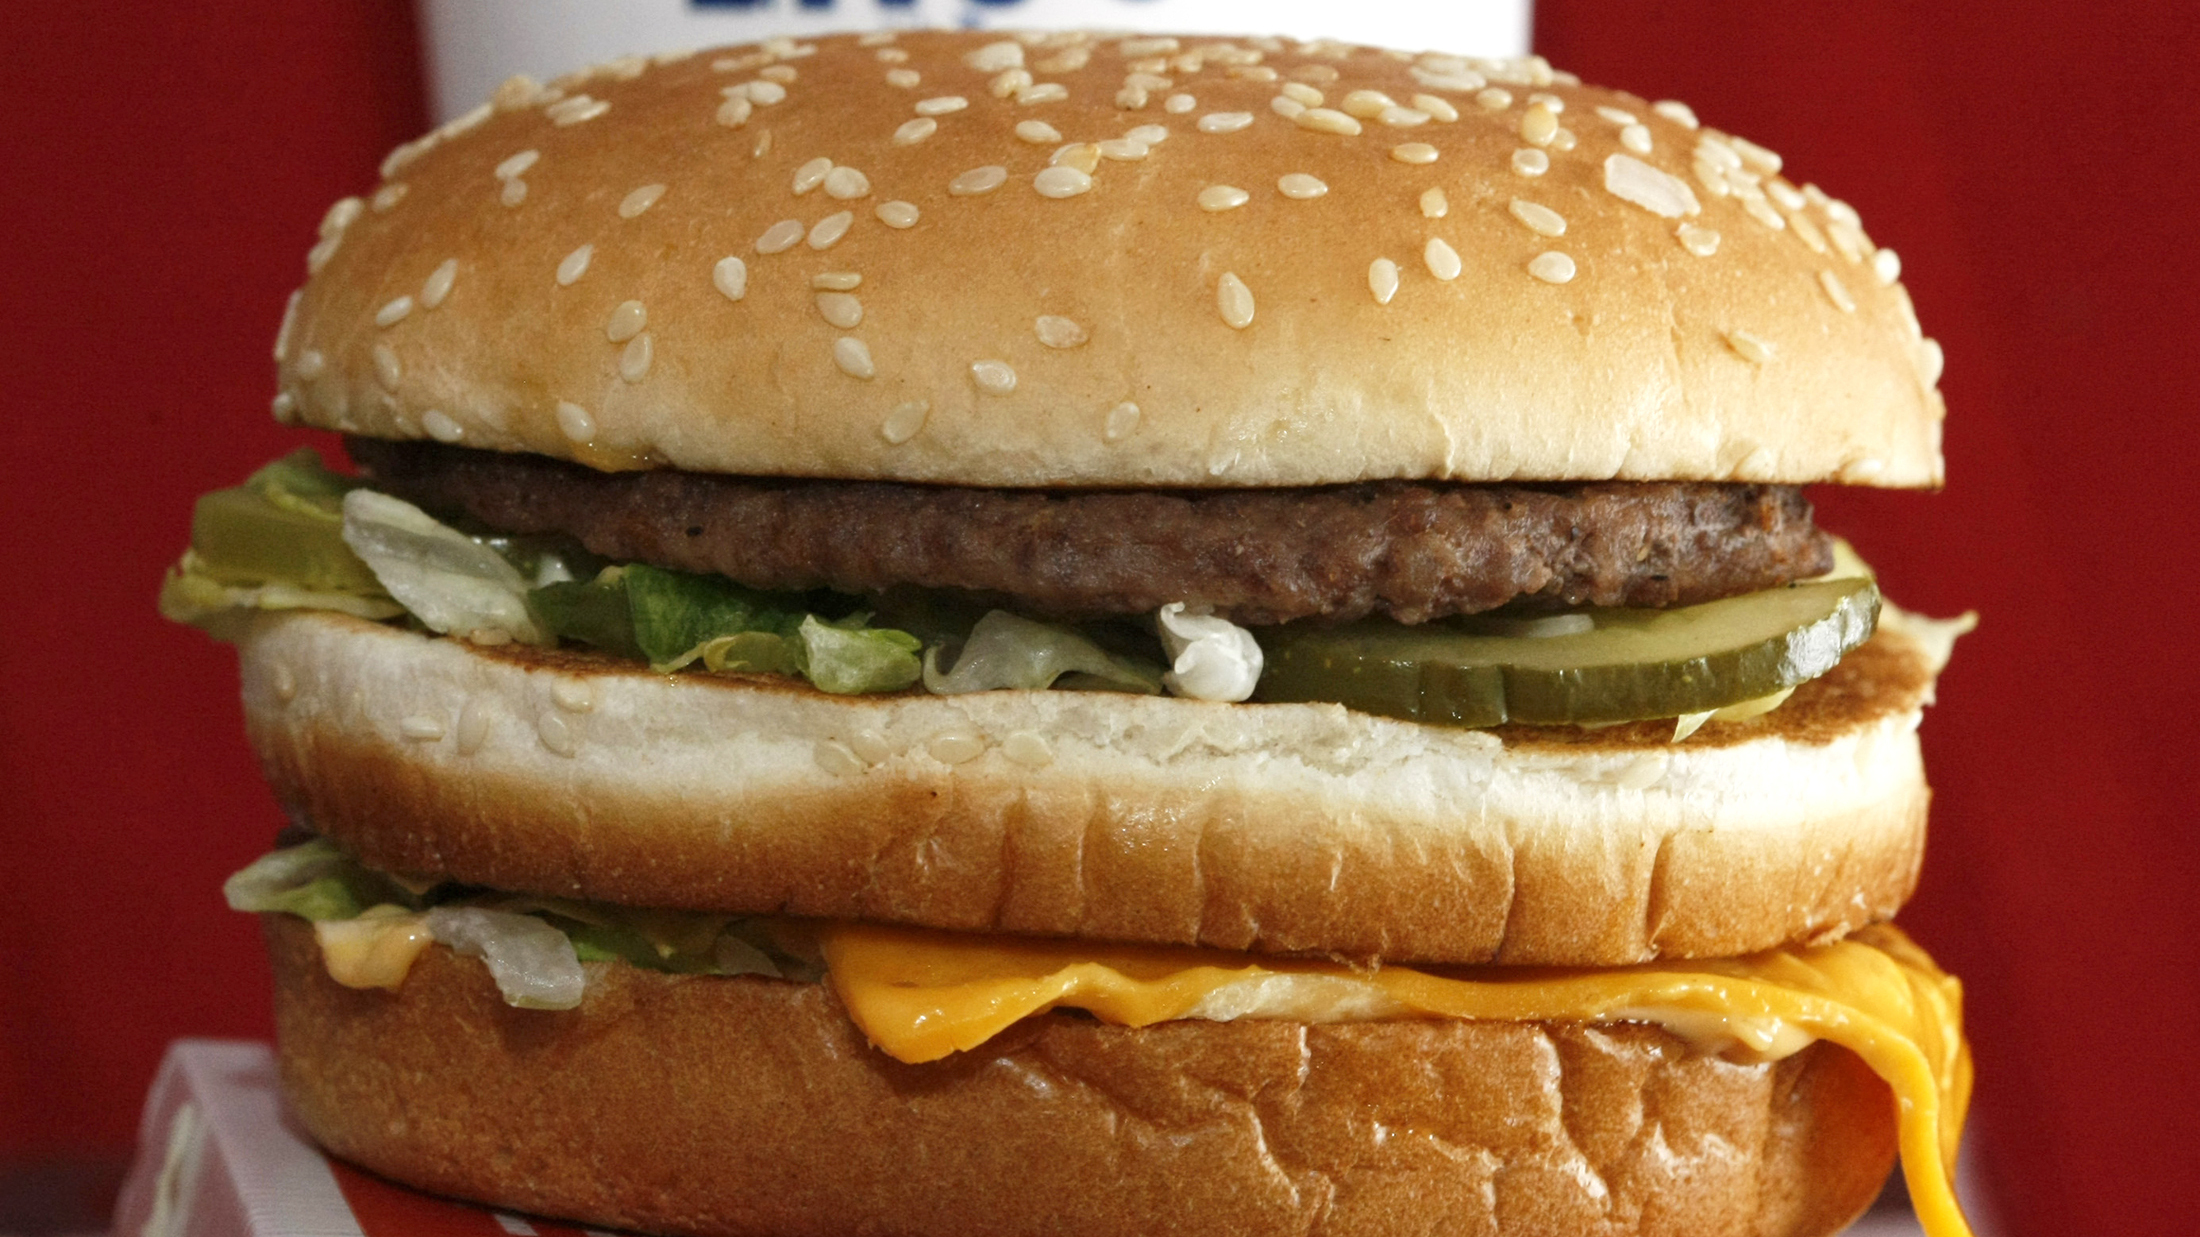 What do Big Mac sellers hide from us?